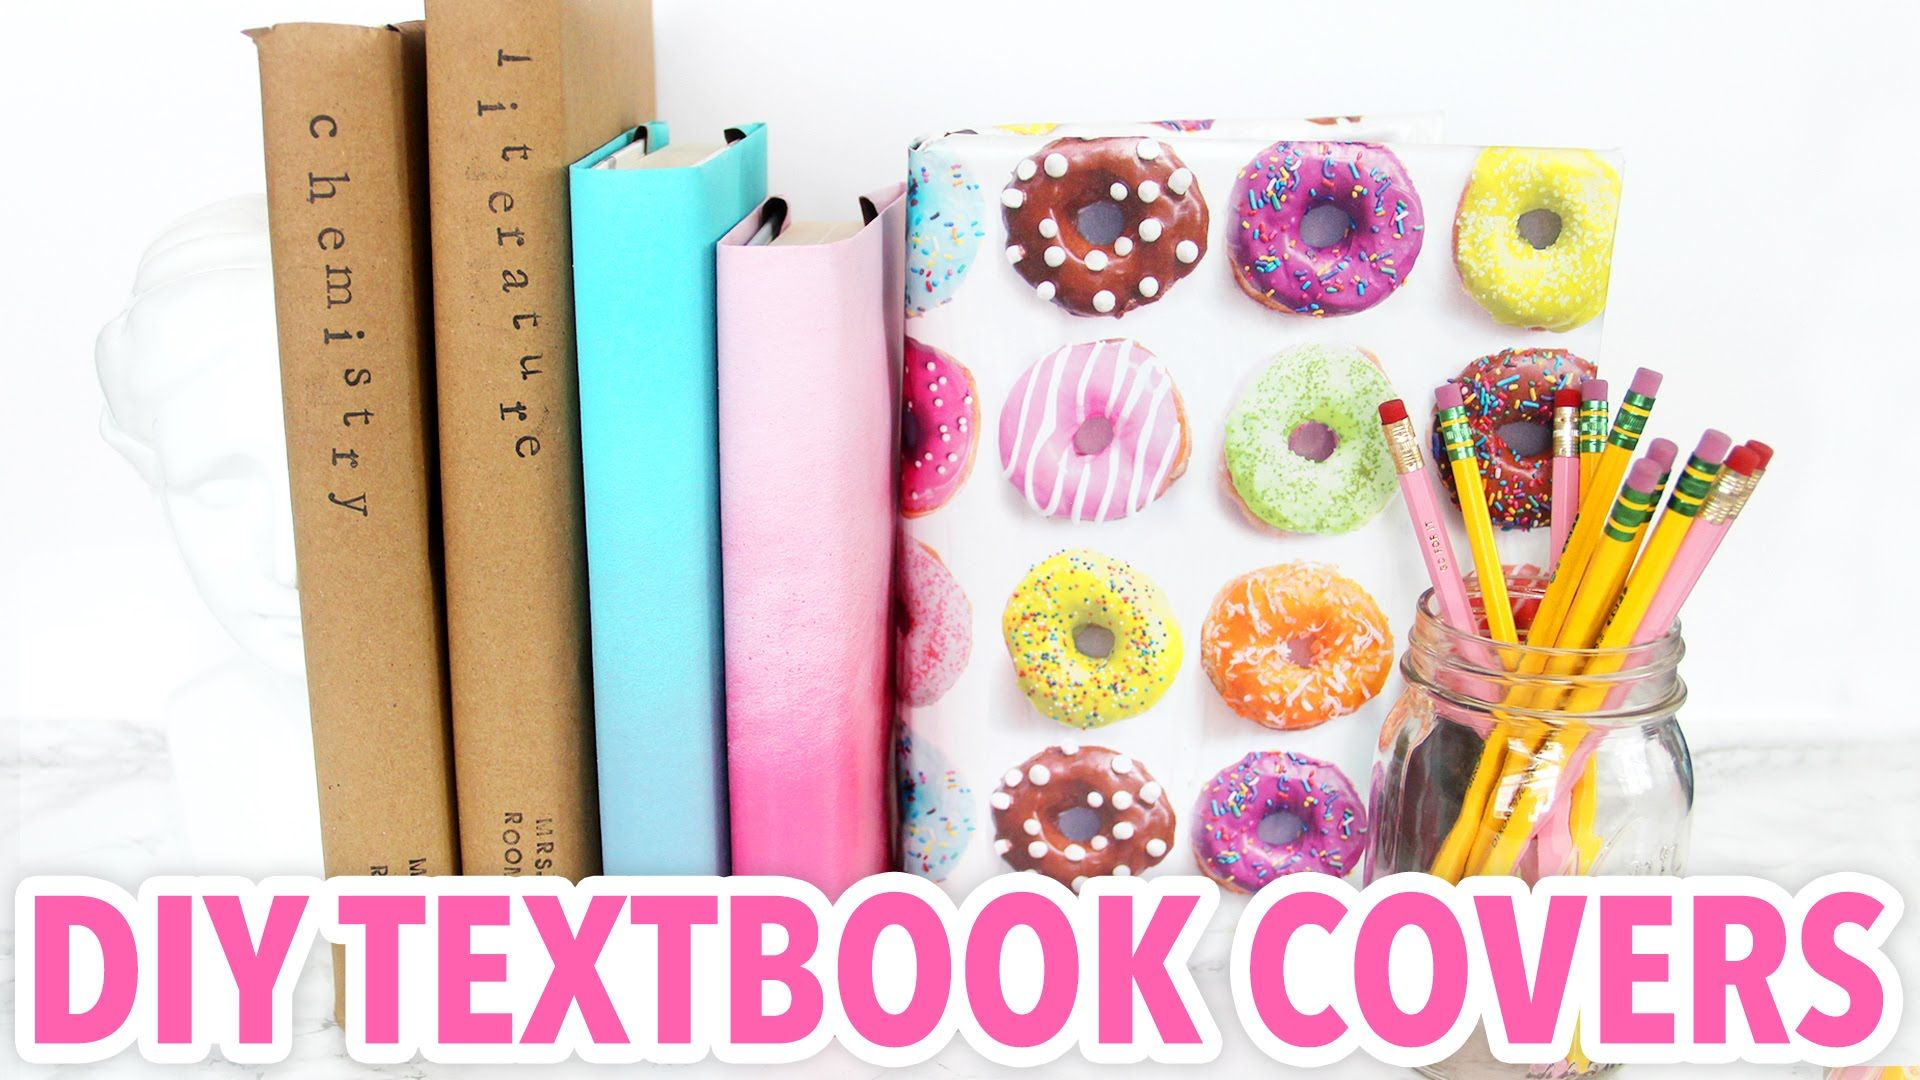 3 DIY Textbook Covers - Back to School 20